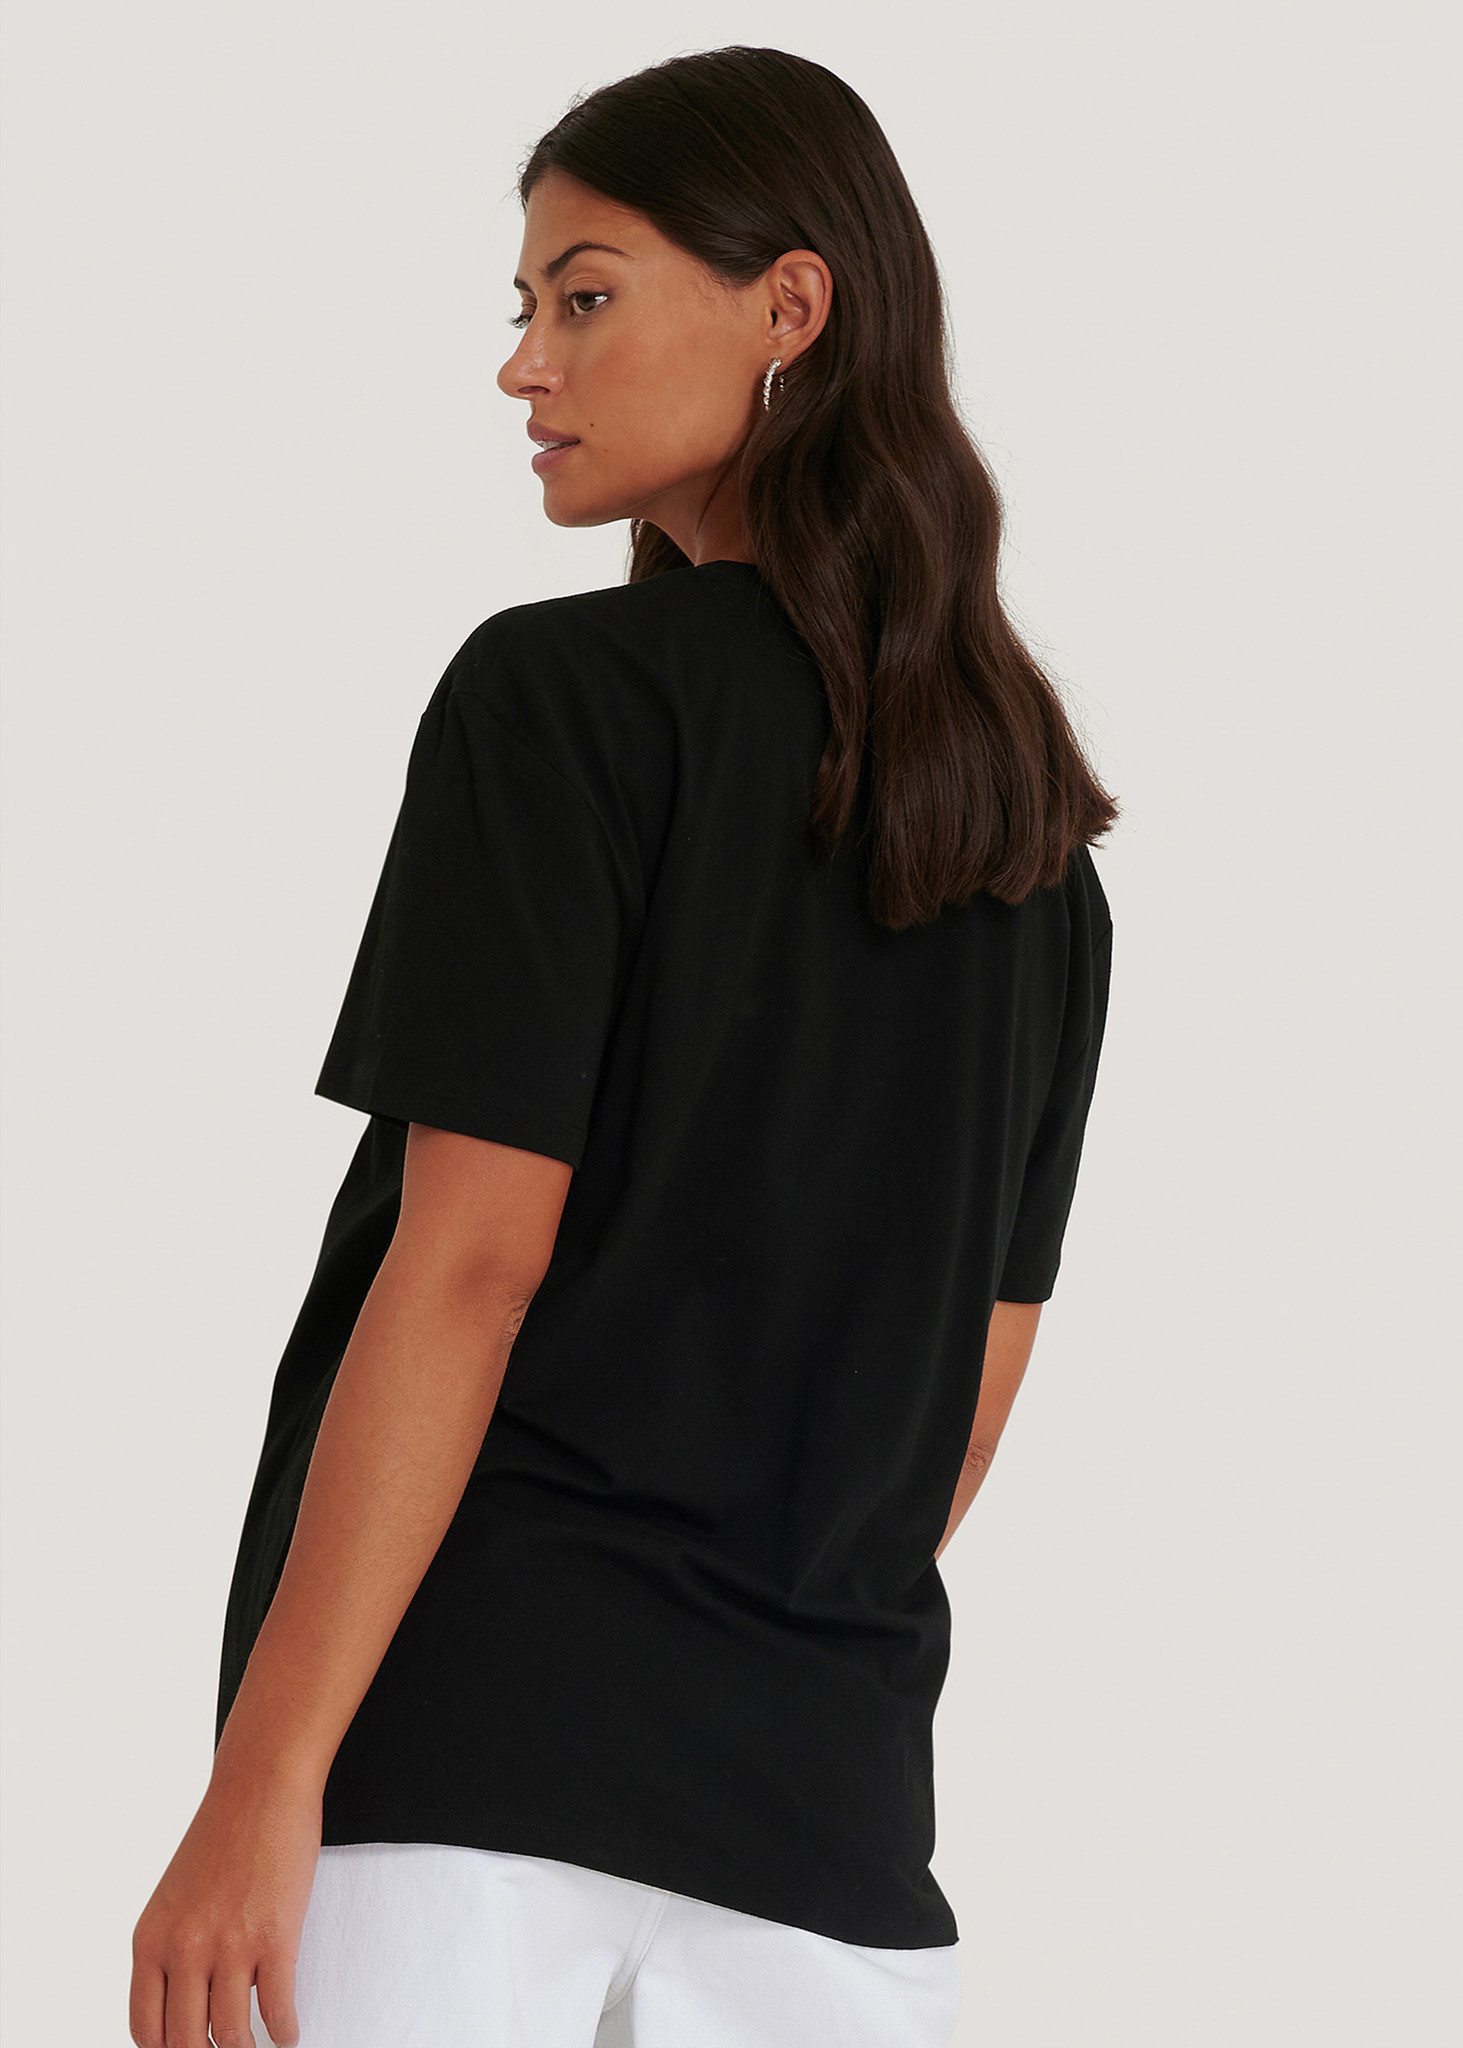 Sun Is Out T-shirt Black-2